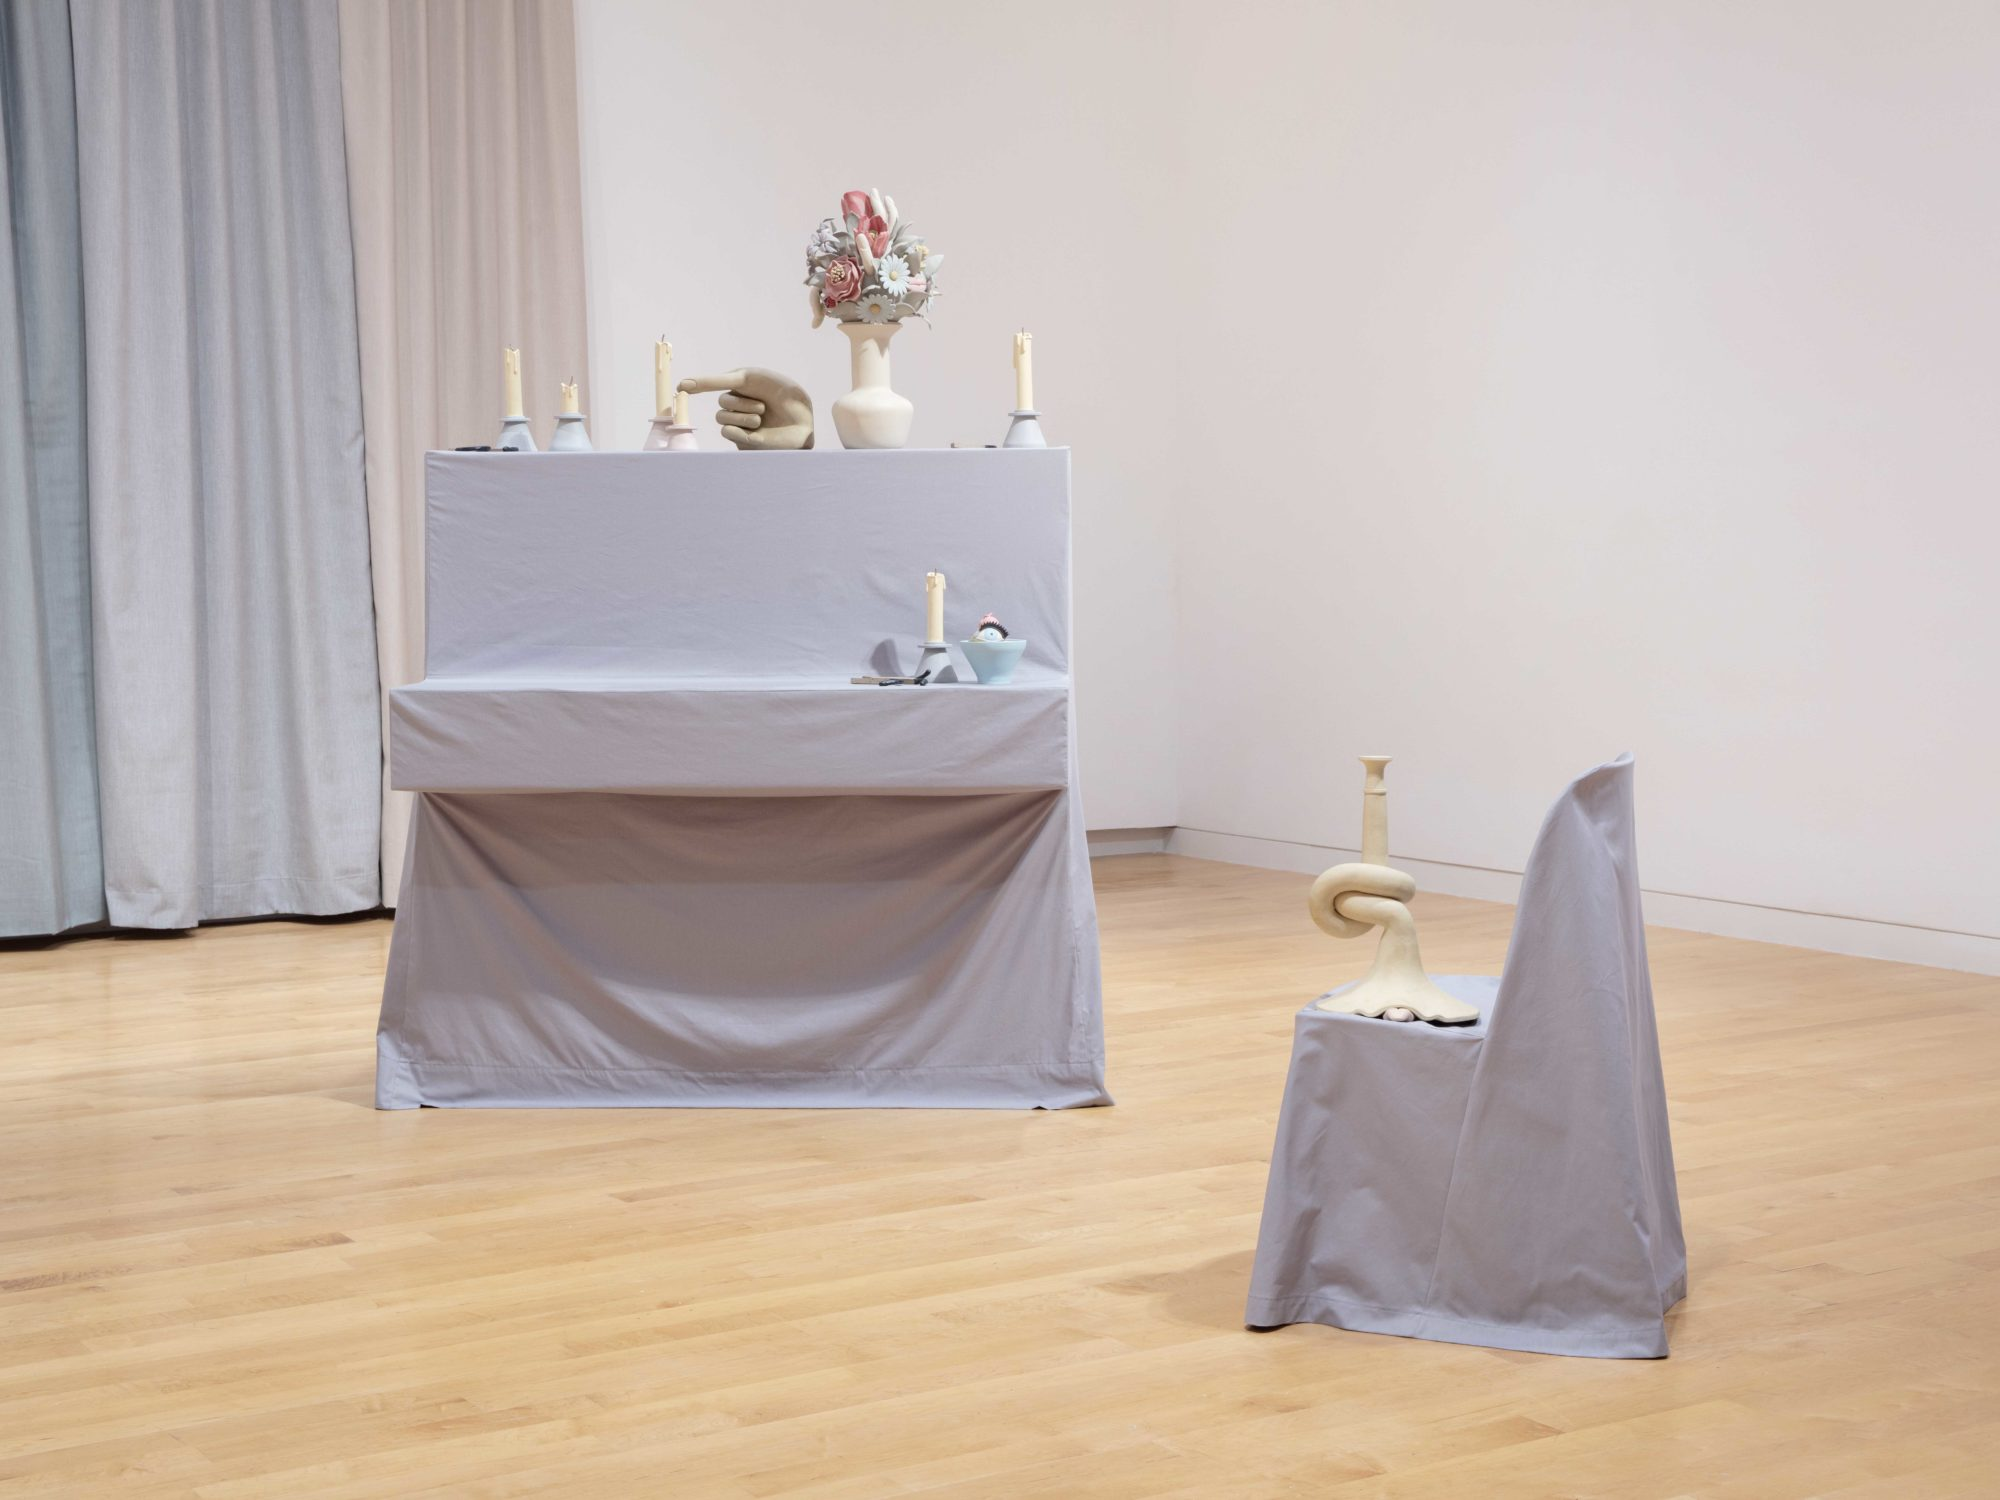 Piano with gray slipcover covered with clay sculptures of extinguished candles and other objects and a side view of a chair with a gray slipcover.